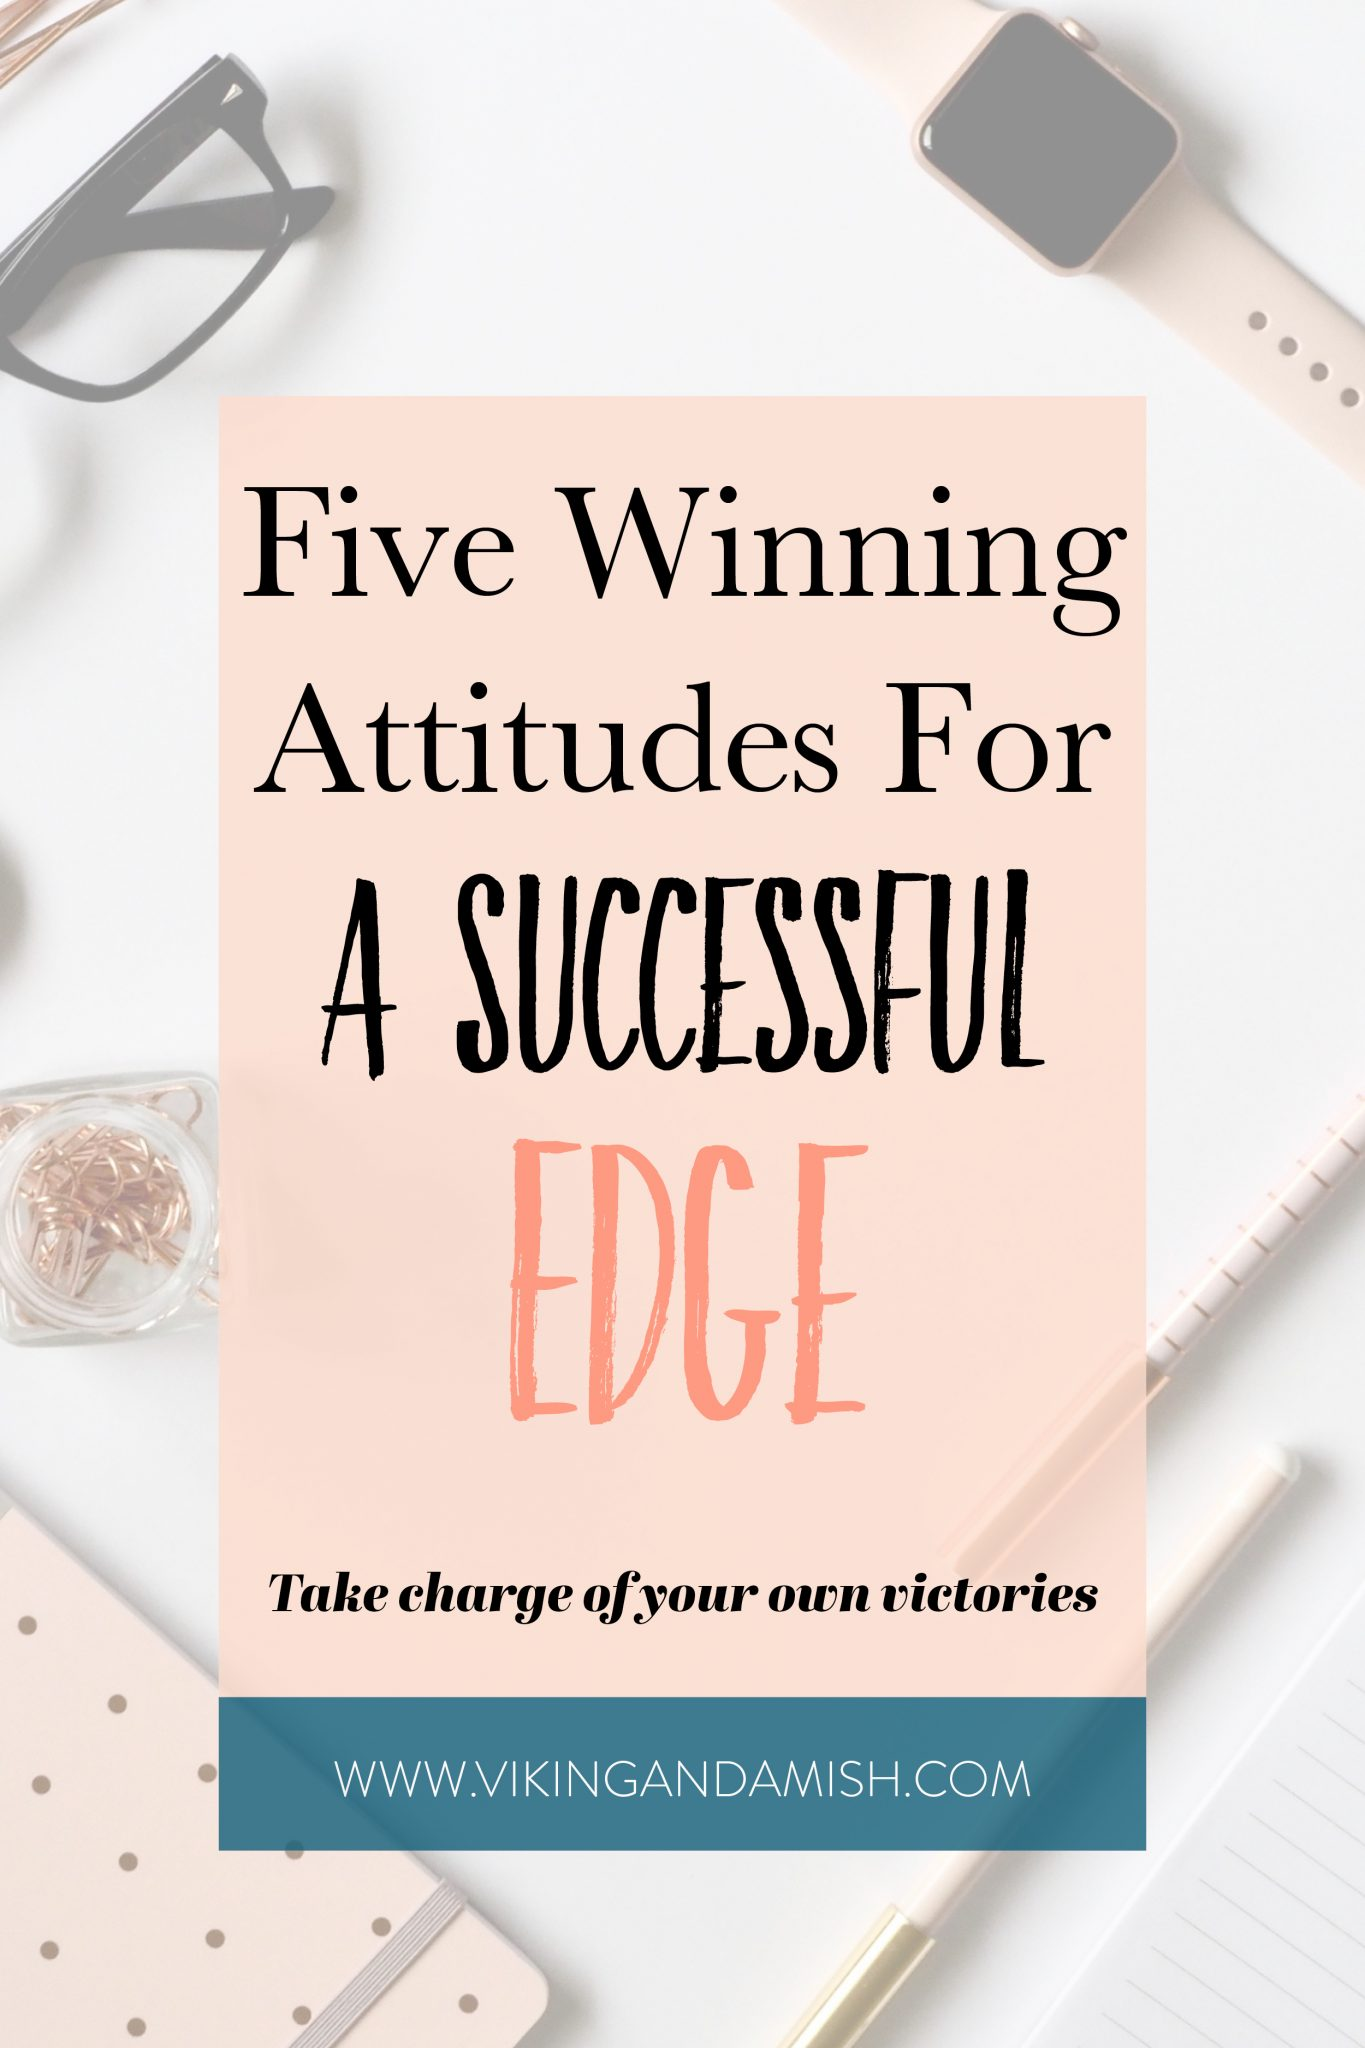 Take charge of your own victories. These five winning attitudes will give you the successful edge that you need to get on top of your game | www.vikingandamish.com